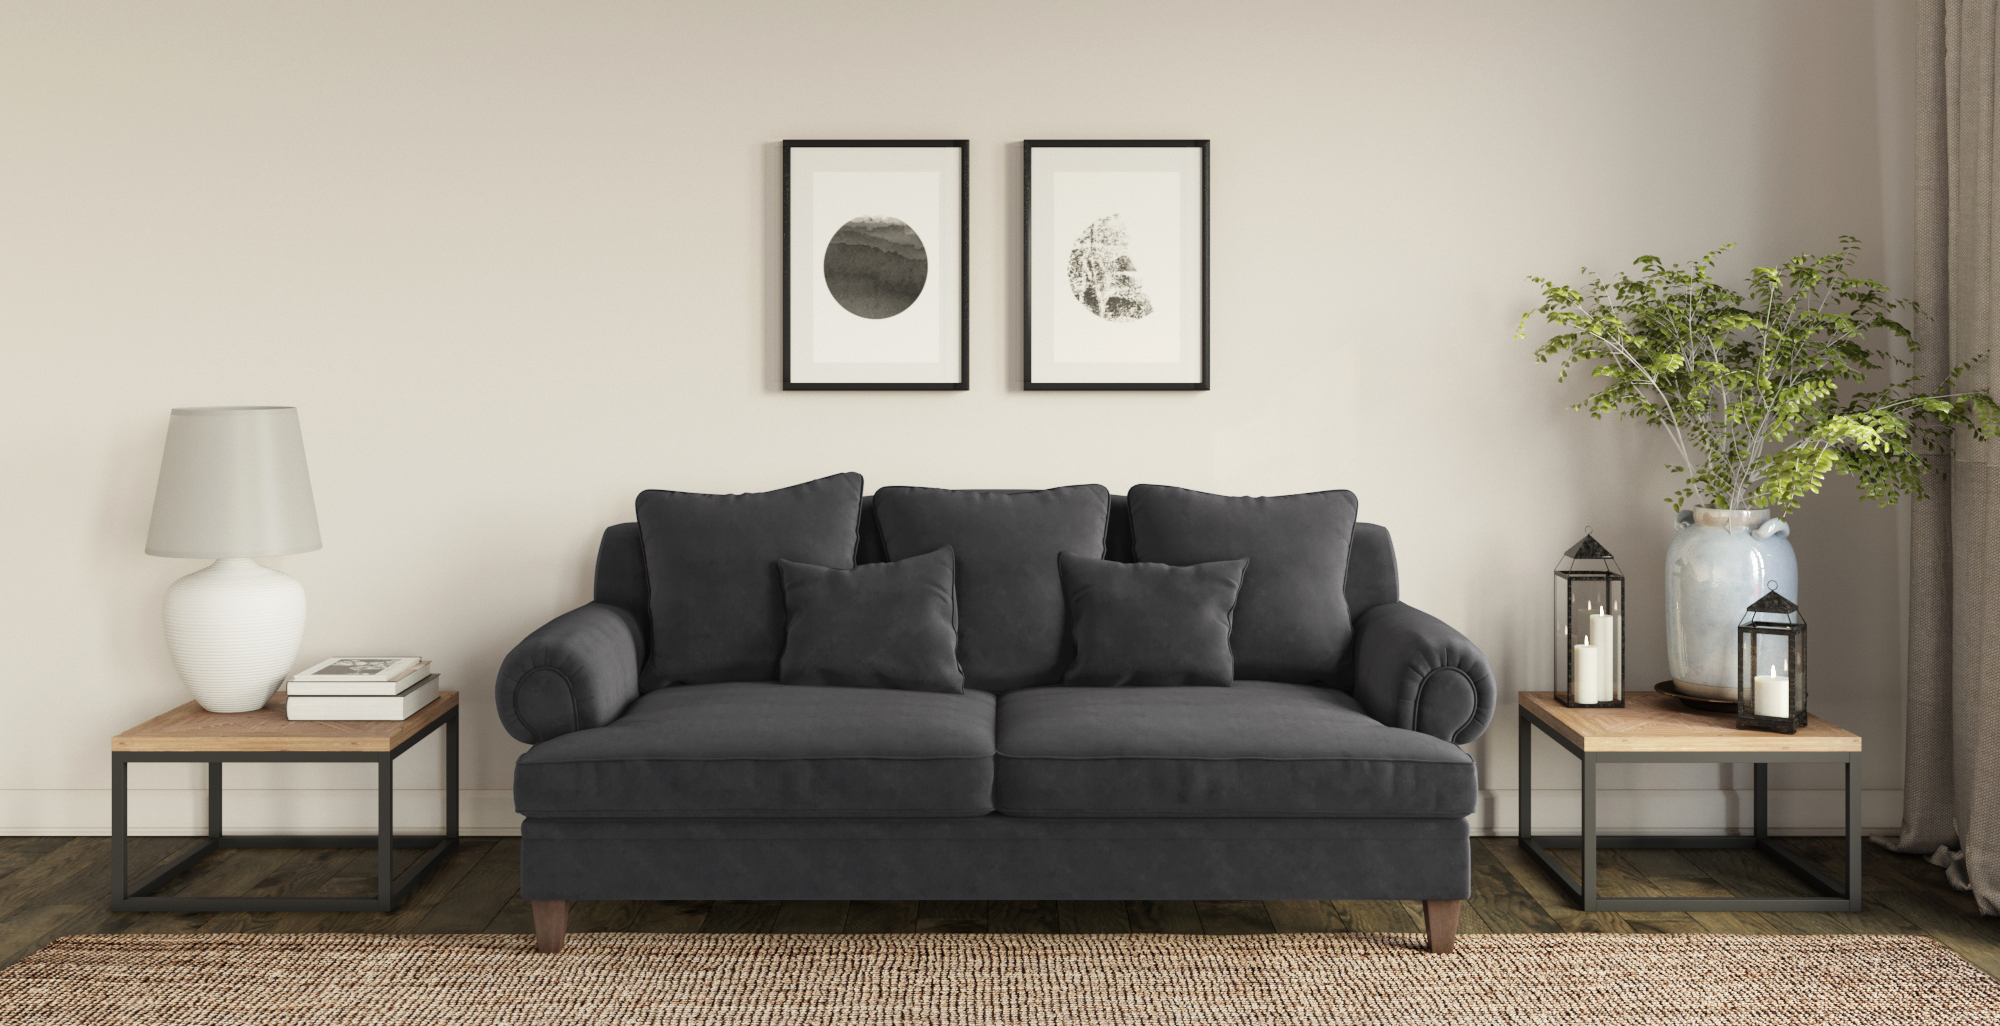 Brosa Mila 3 Seater Sofa styled in modern living room with natural rug